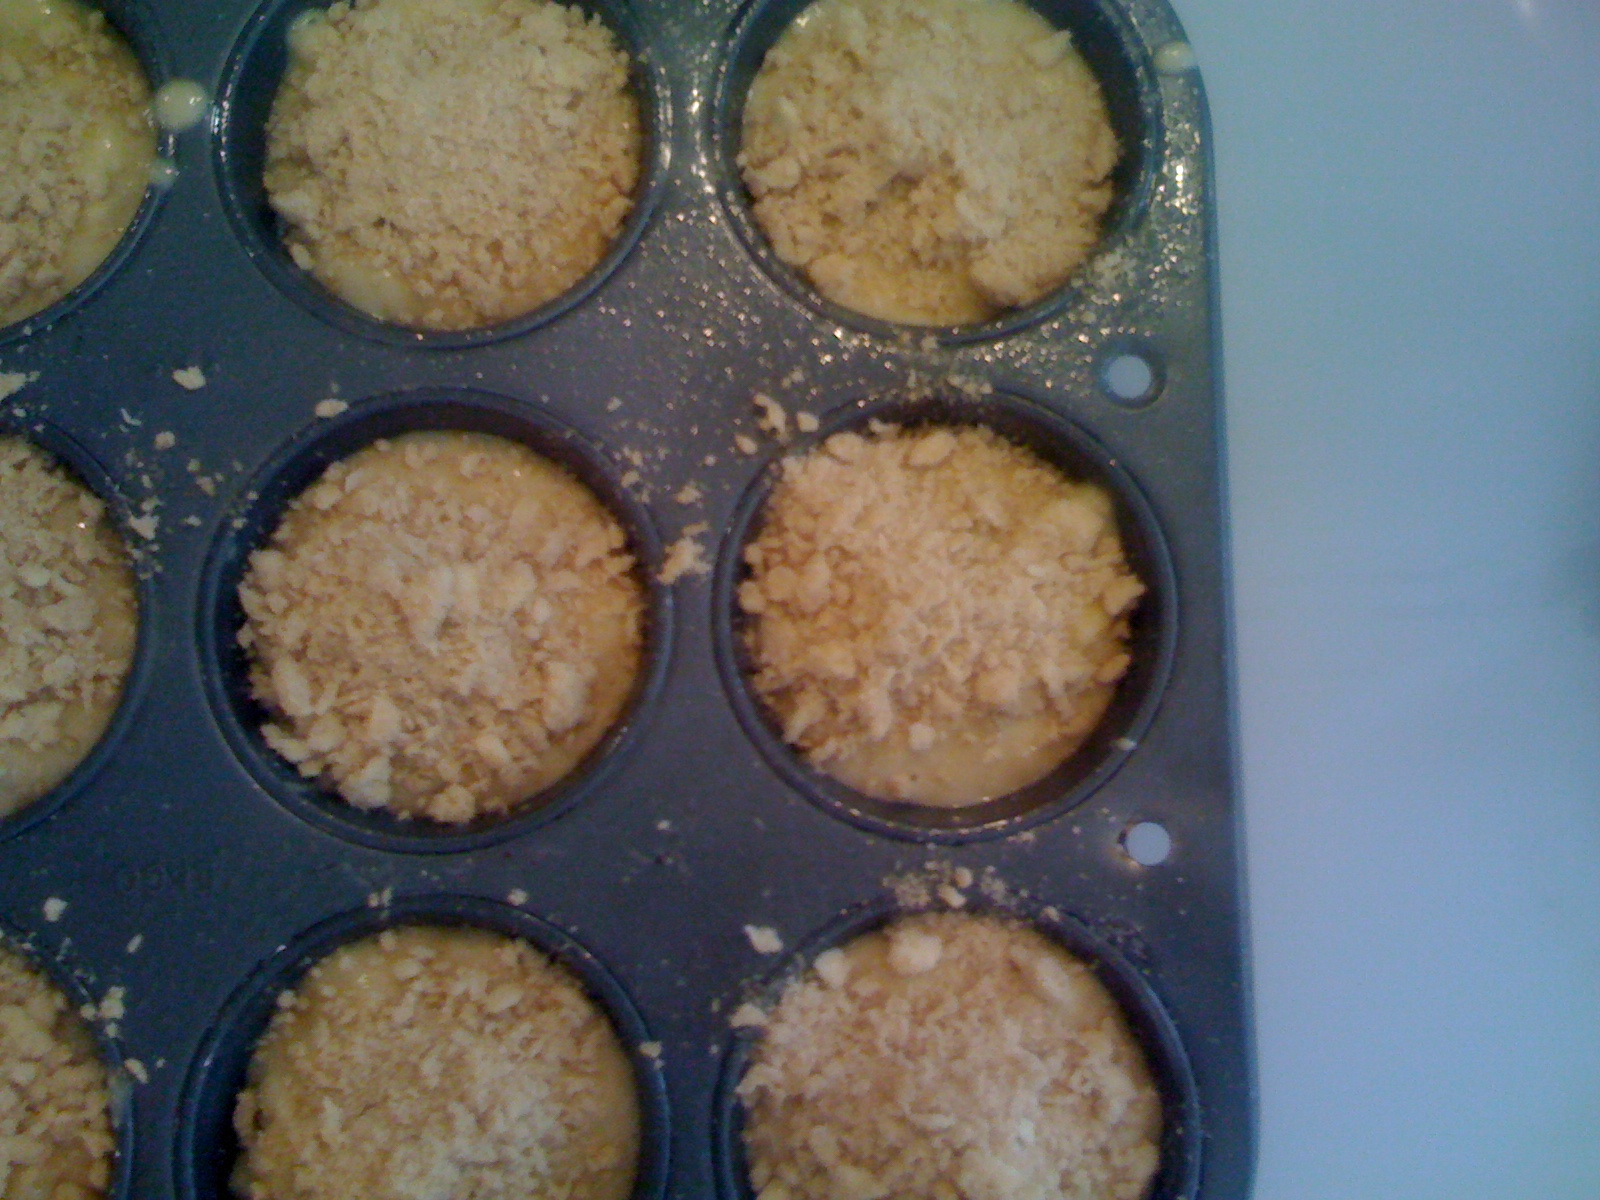 Apple Streusel Muffins Ready to Bake